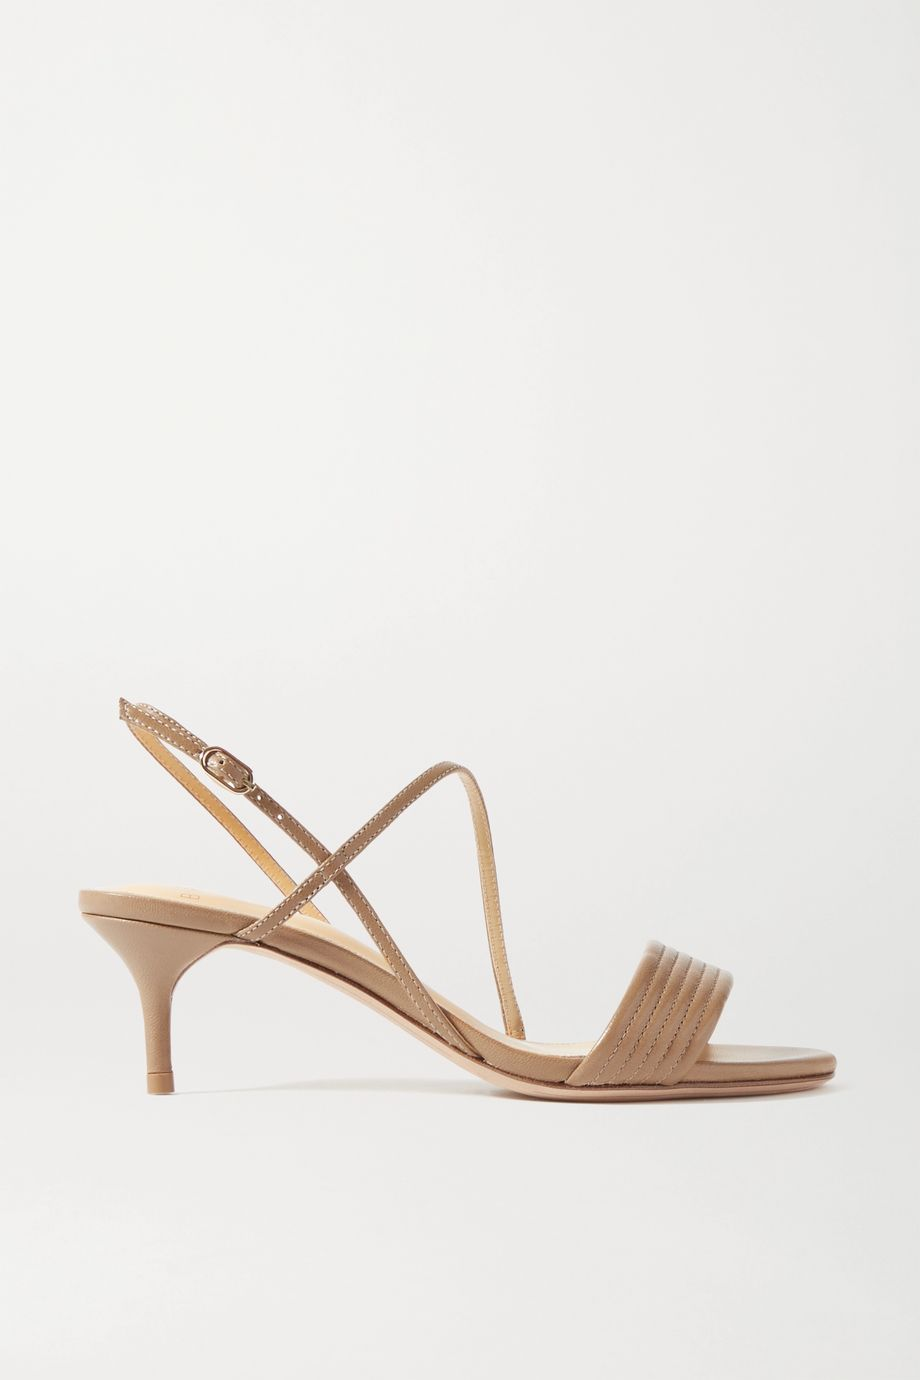 Alexandre Birman Veronica leather sandals